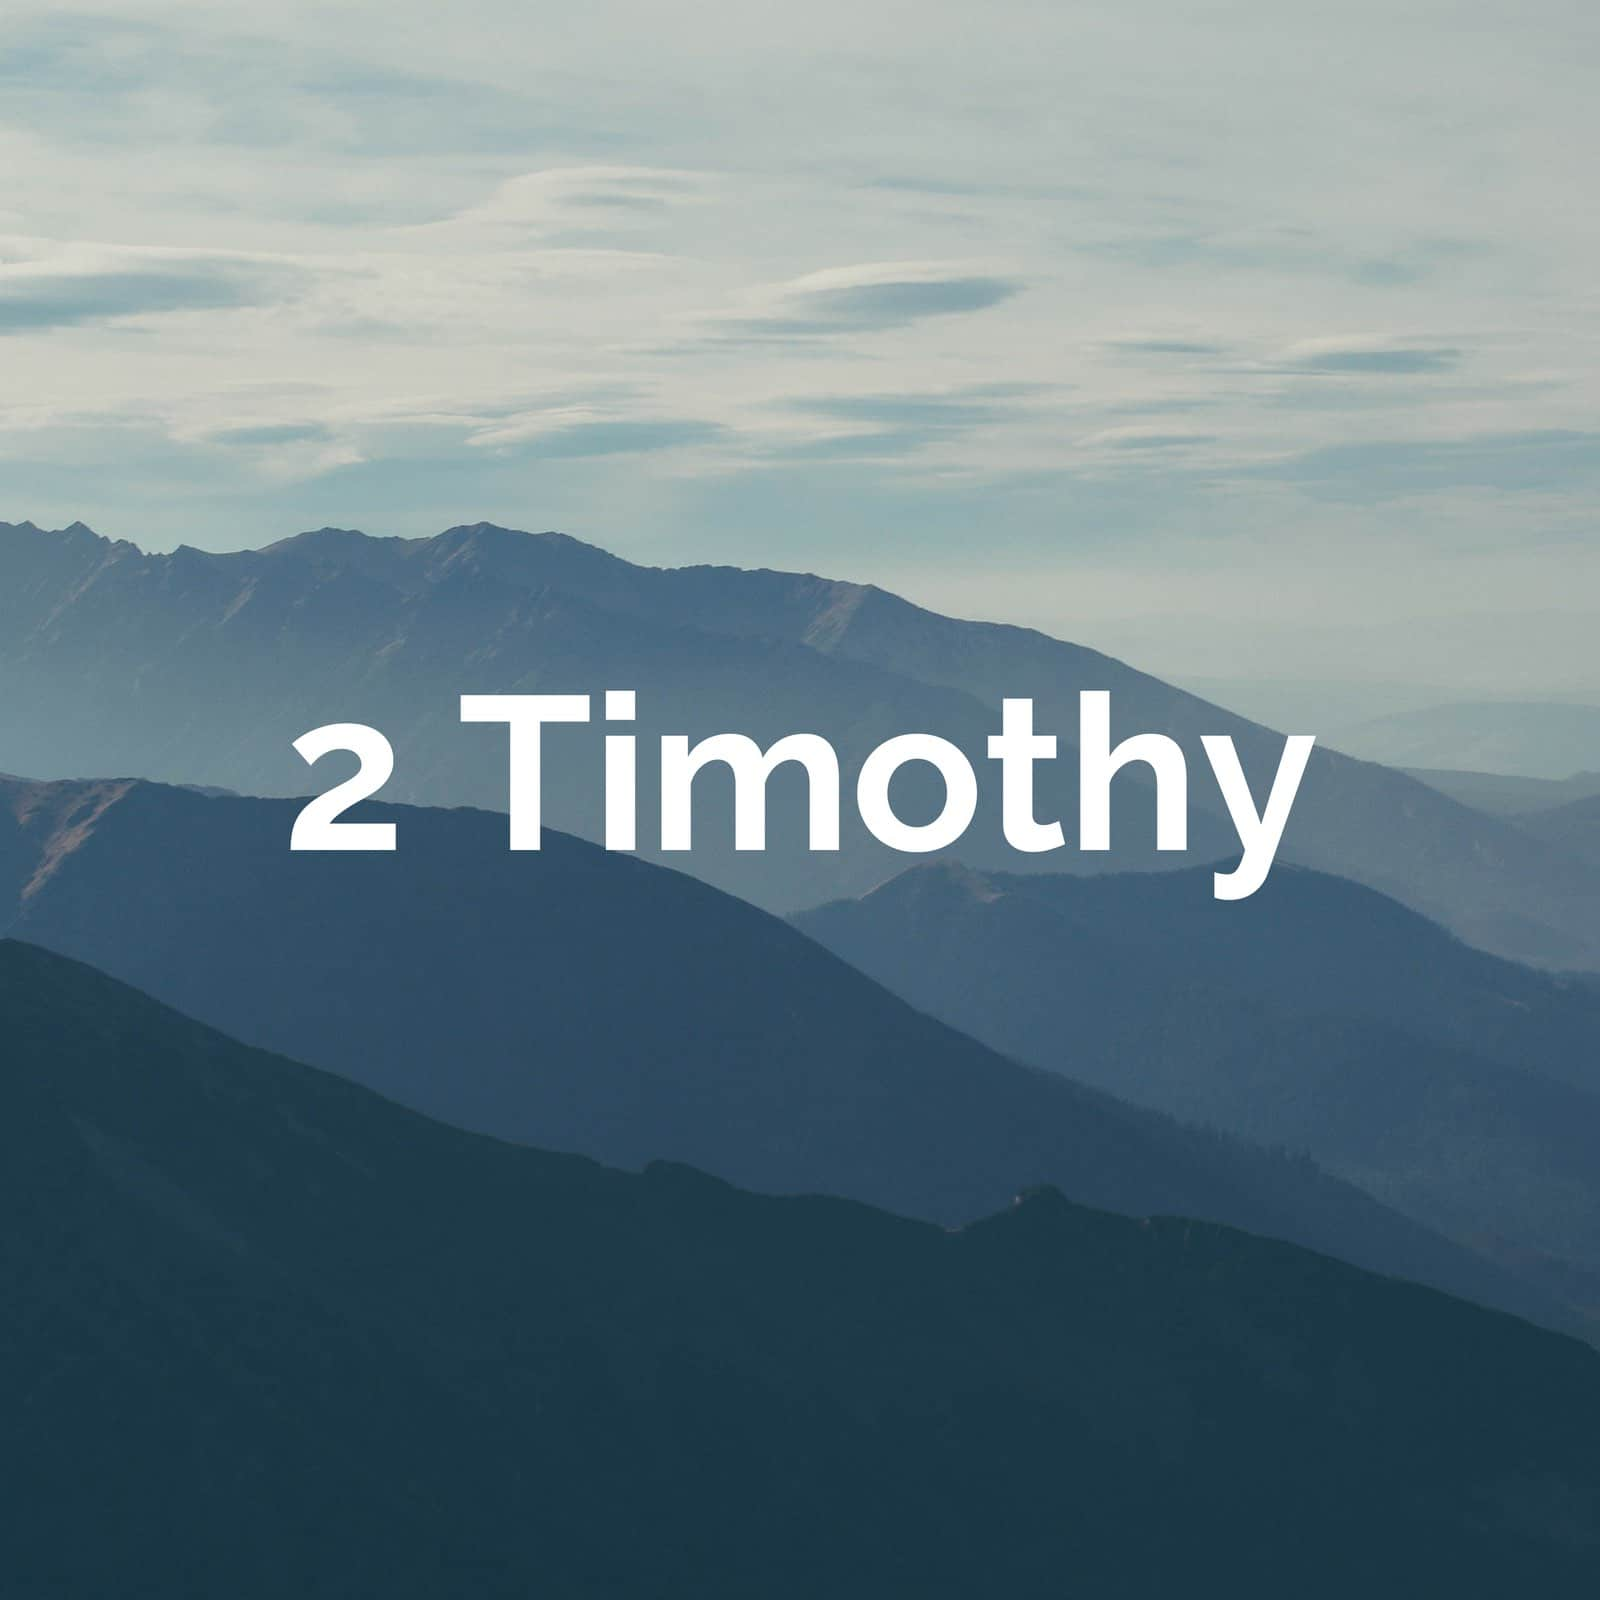 Godliness Over Greatness (2 Timothy 2:20-26)